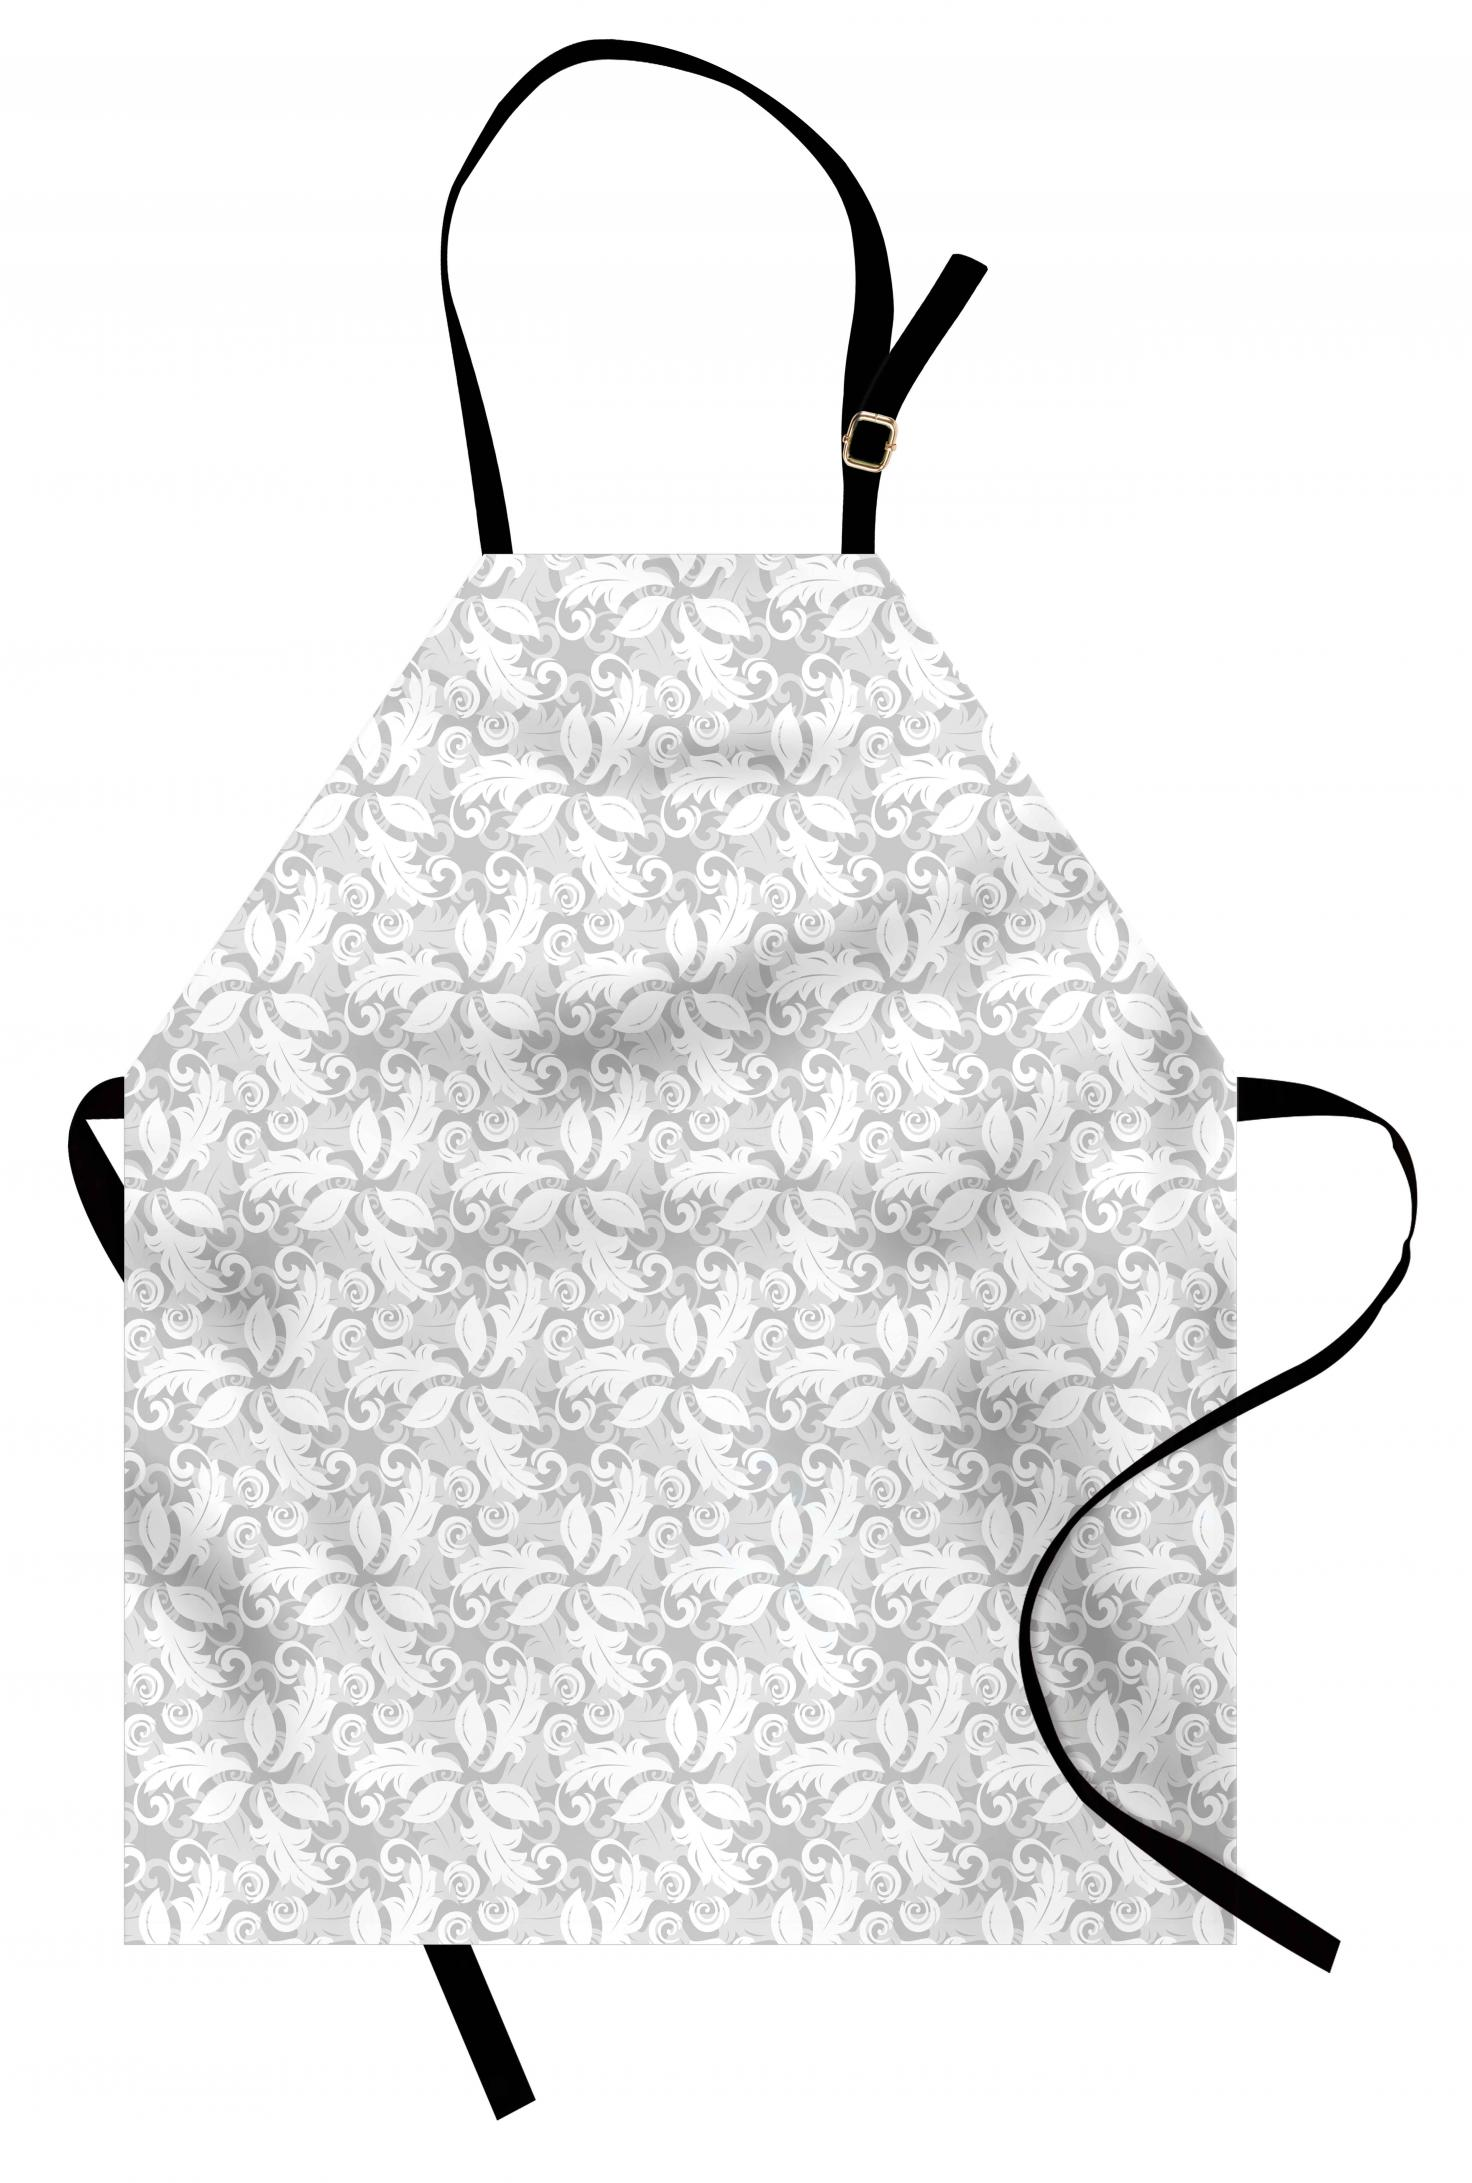 Grey Apron Swirled Blossom Leaves Kitsch Exquisite Nature